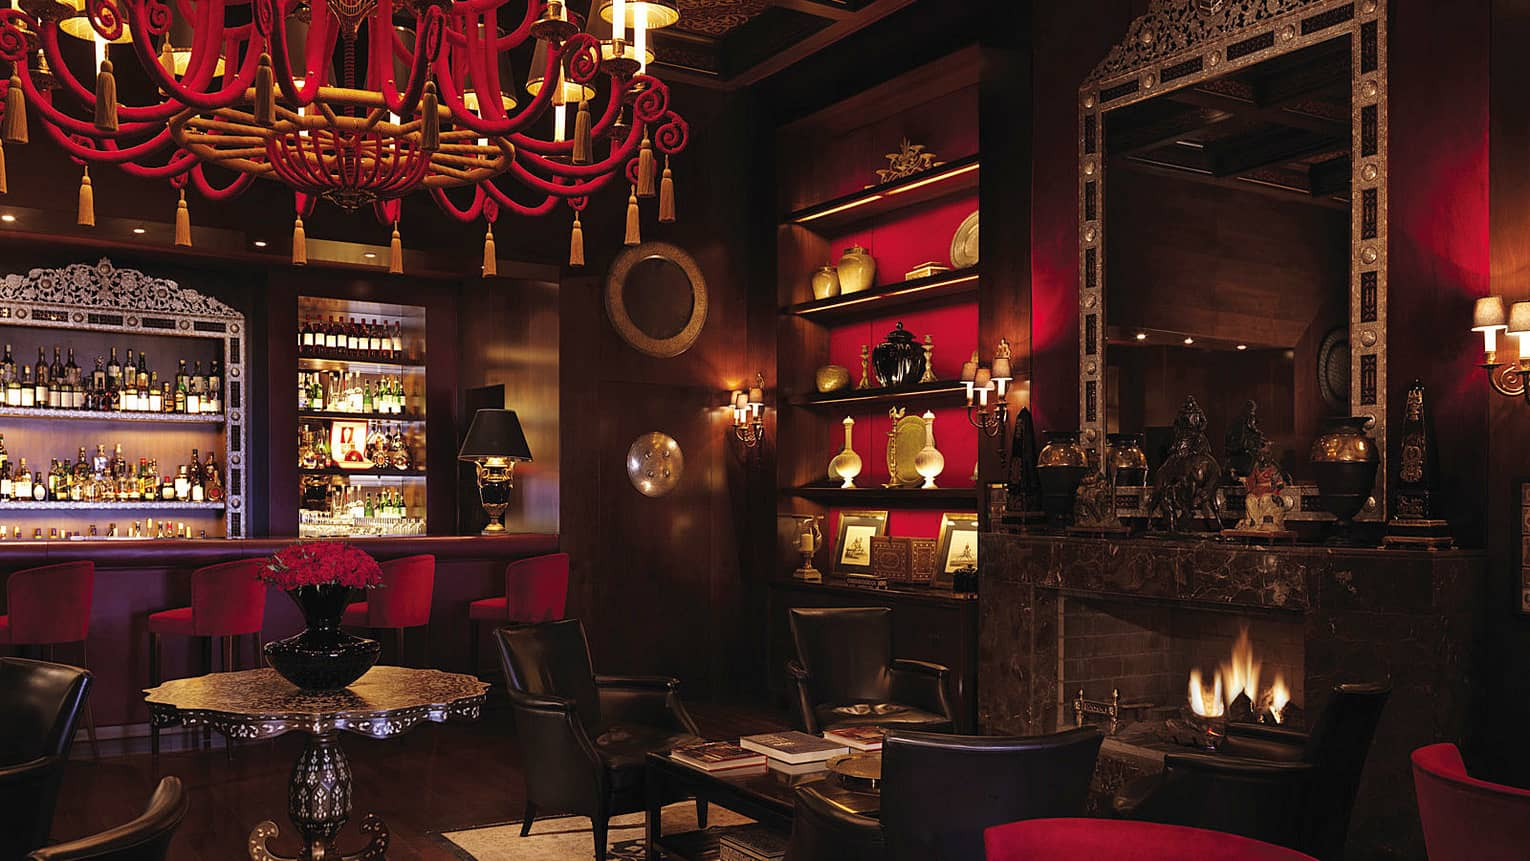 Bar interior with dark wood, red chandelier, shelf and velvet bar stools, arabesque ceiling, fireplace